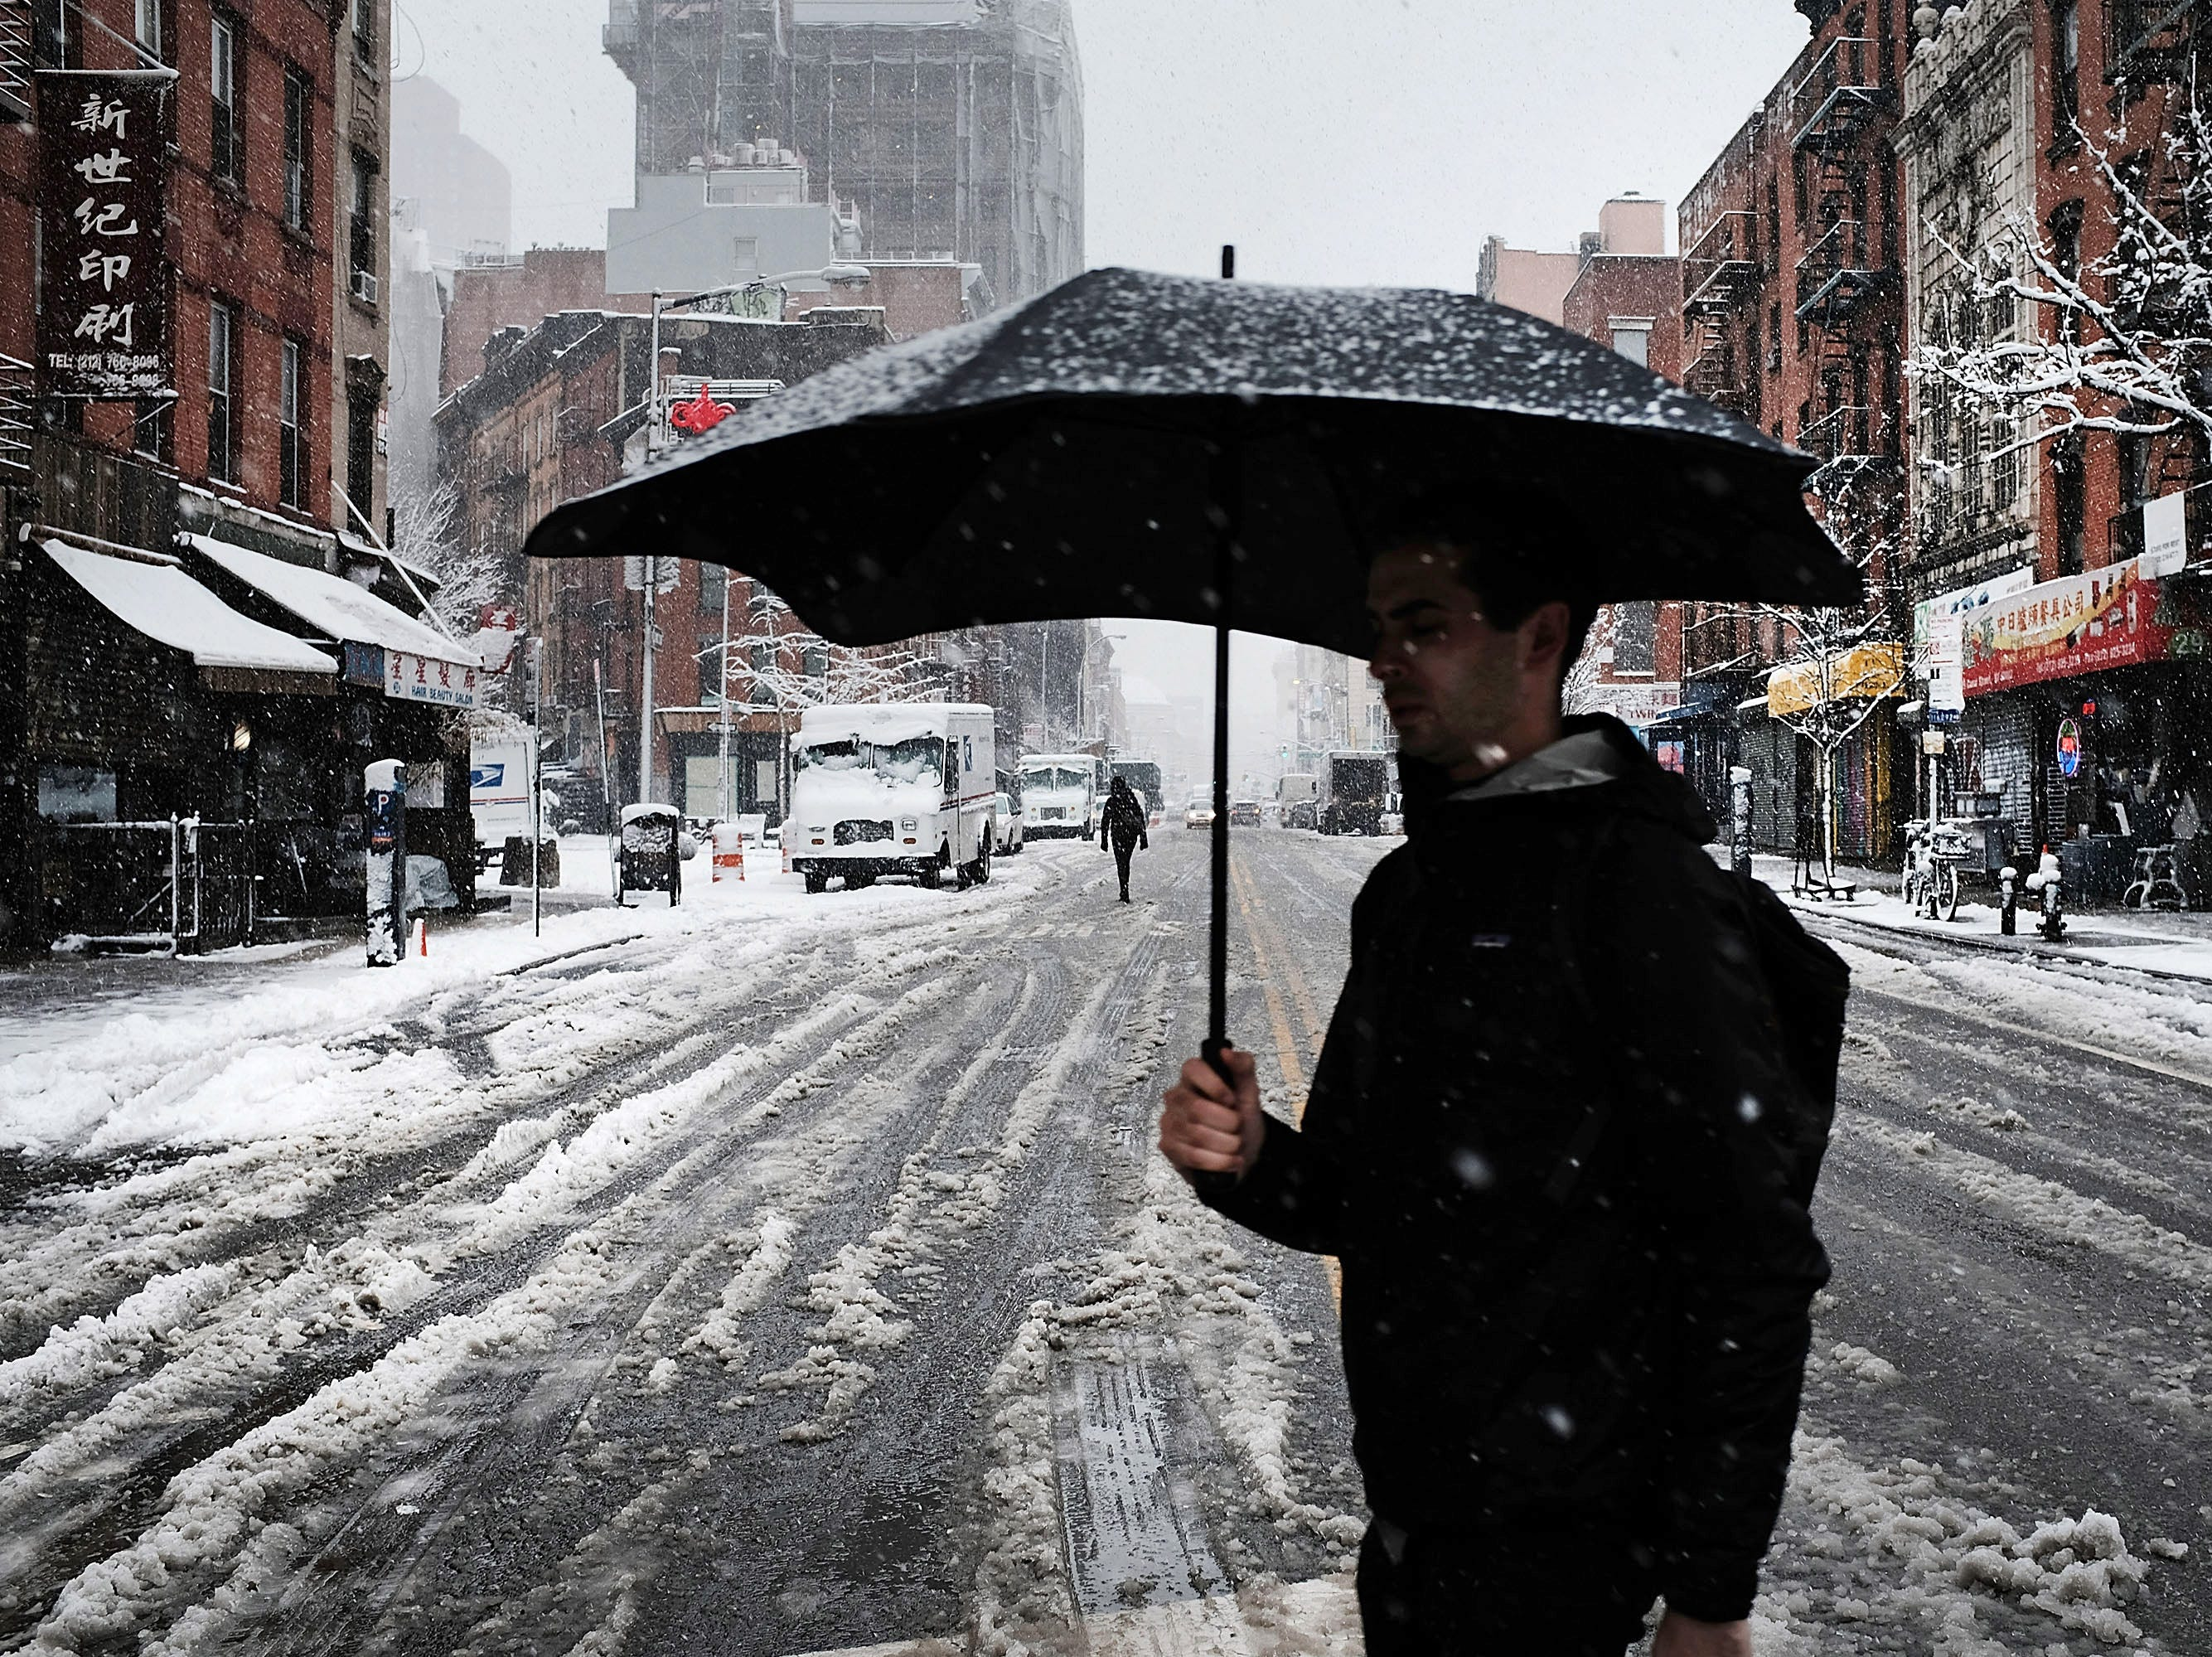 NEW YORK, NY - APRIL 02:  A pedestrian walks in the morning snow during an early spring storm on April 2, 2018 in New York City. New York City and much of New England has experienced a winter season with significant snow fall and a large number of storms that disrupted life for residents throughout the region.  (Photo by Spencer Platt/Getty Images)